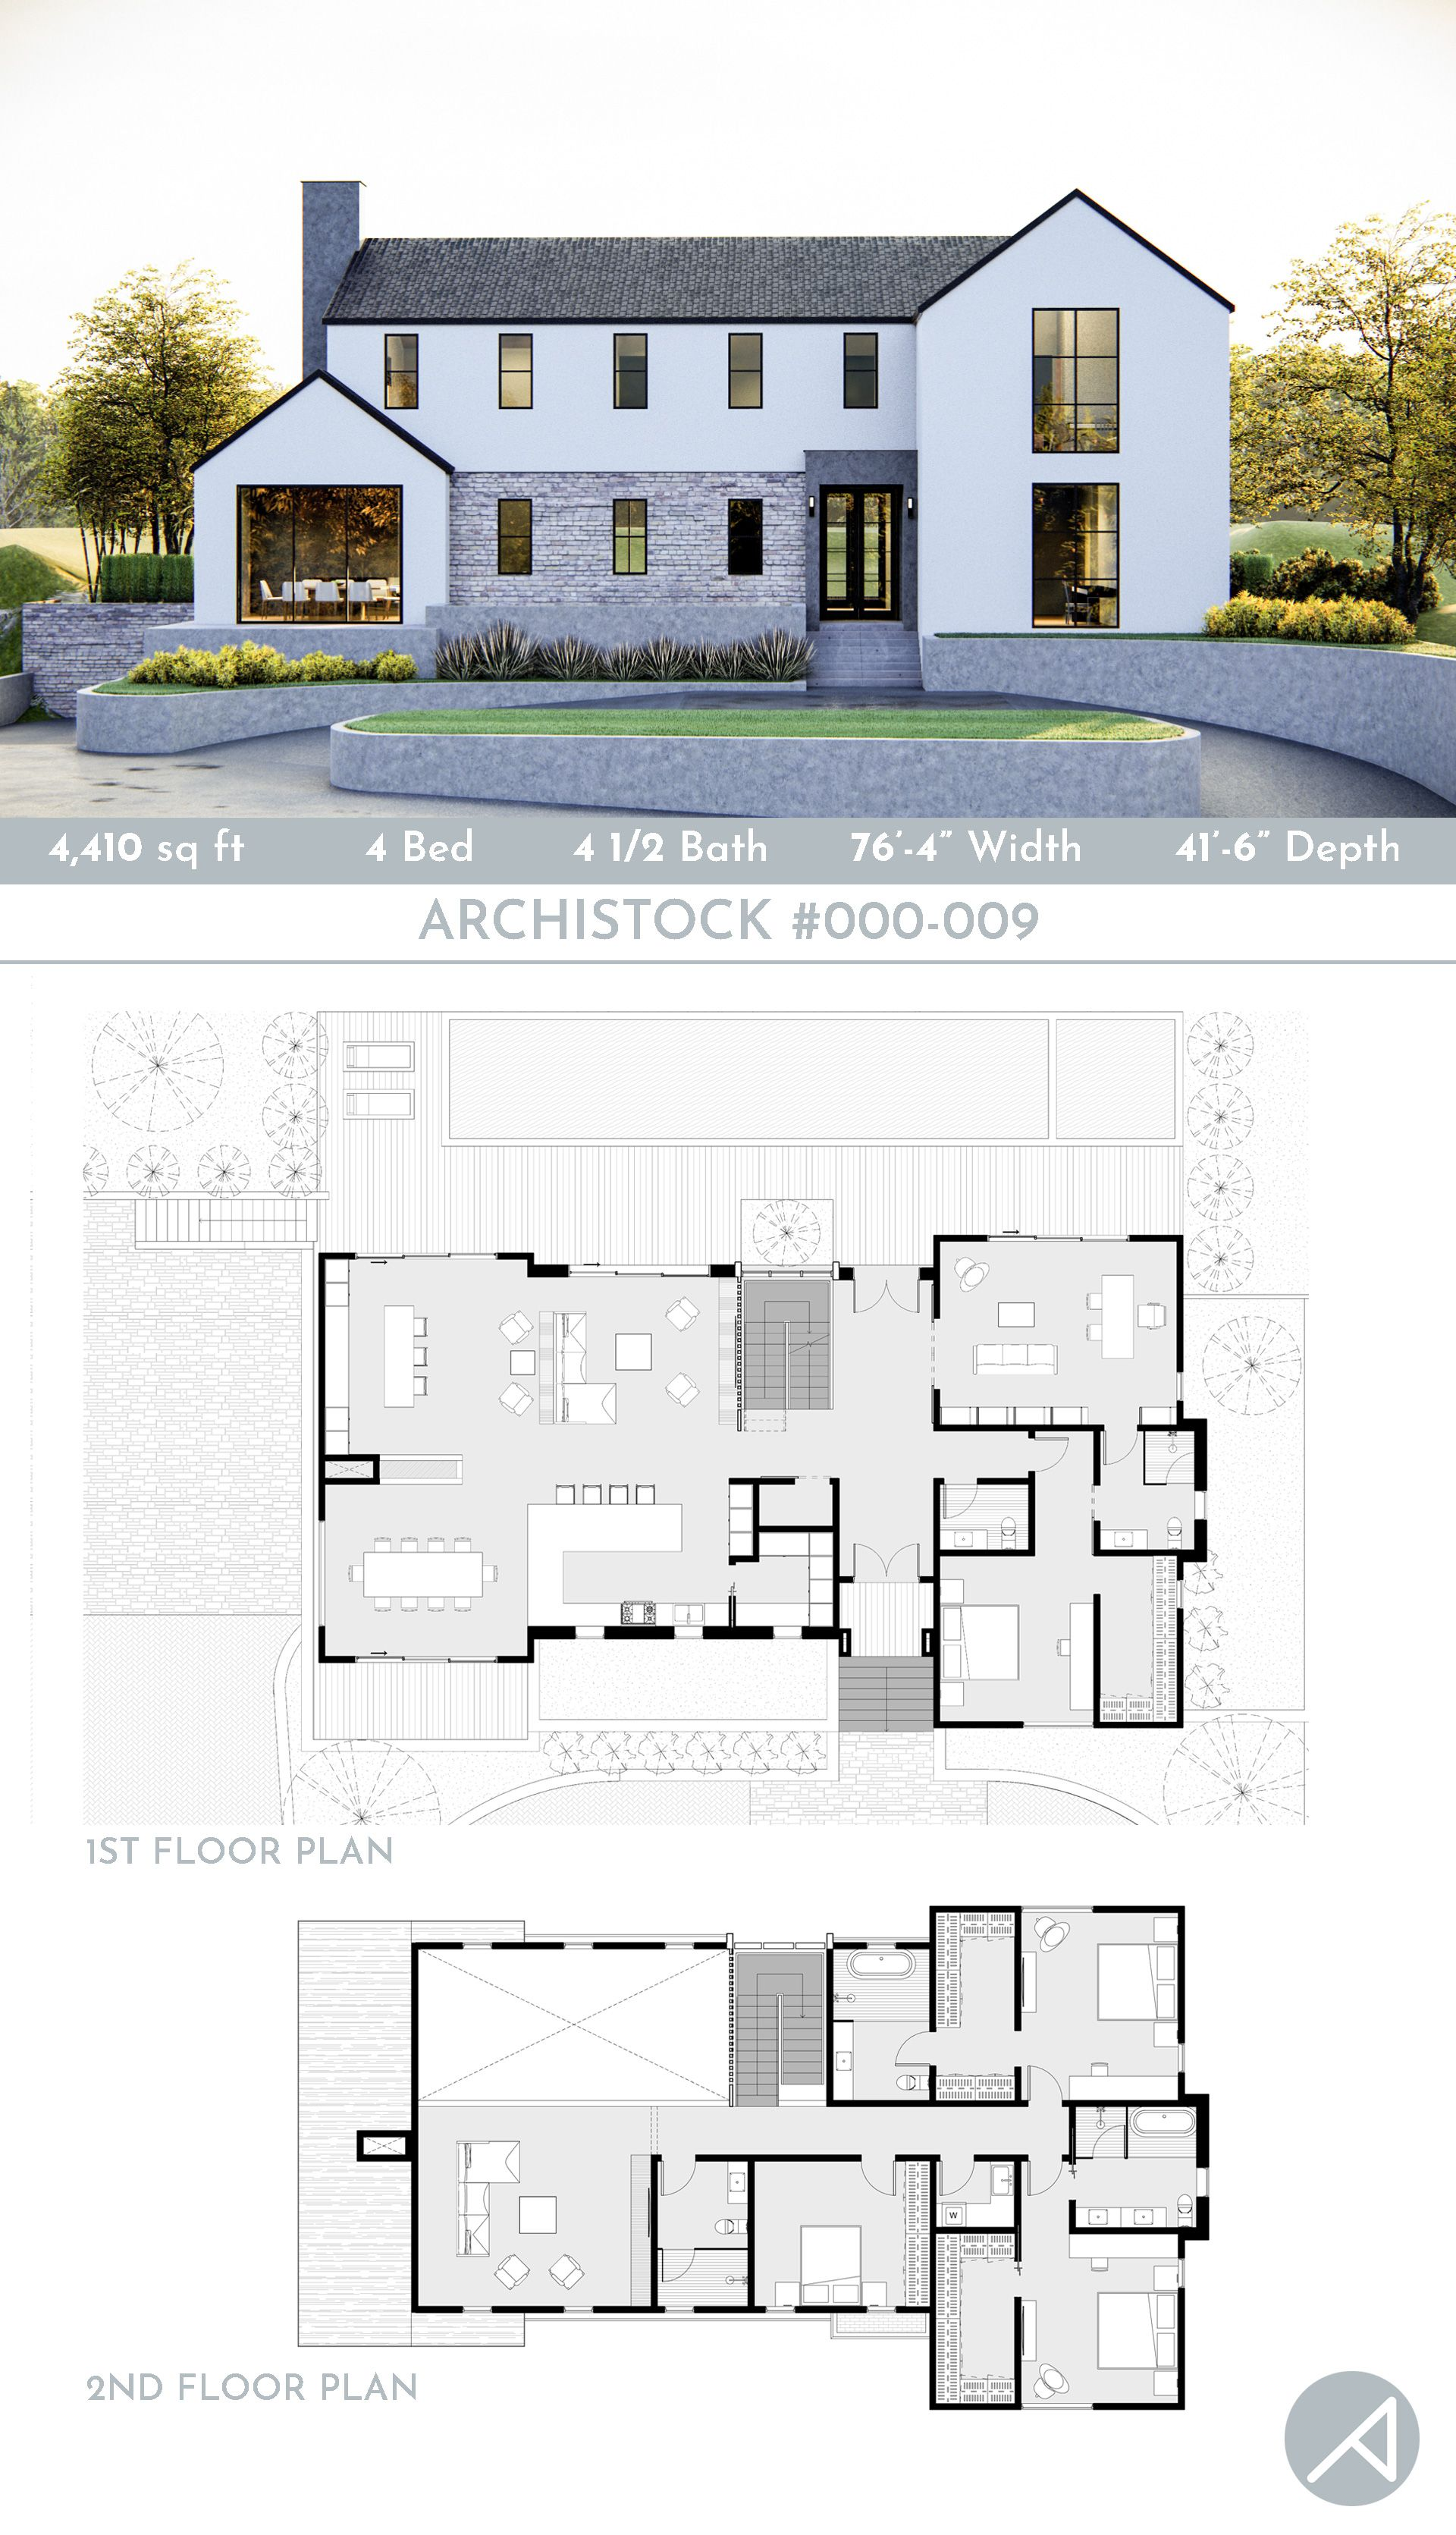 4 Bedroom Modern Farmhouse Plan With A Basement Farmhouse Style House Plans Modern Farmhouse Plans Beautiful House Plans